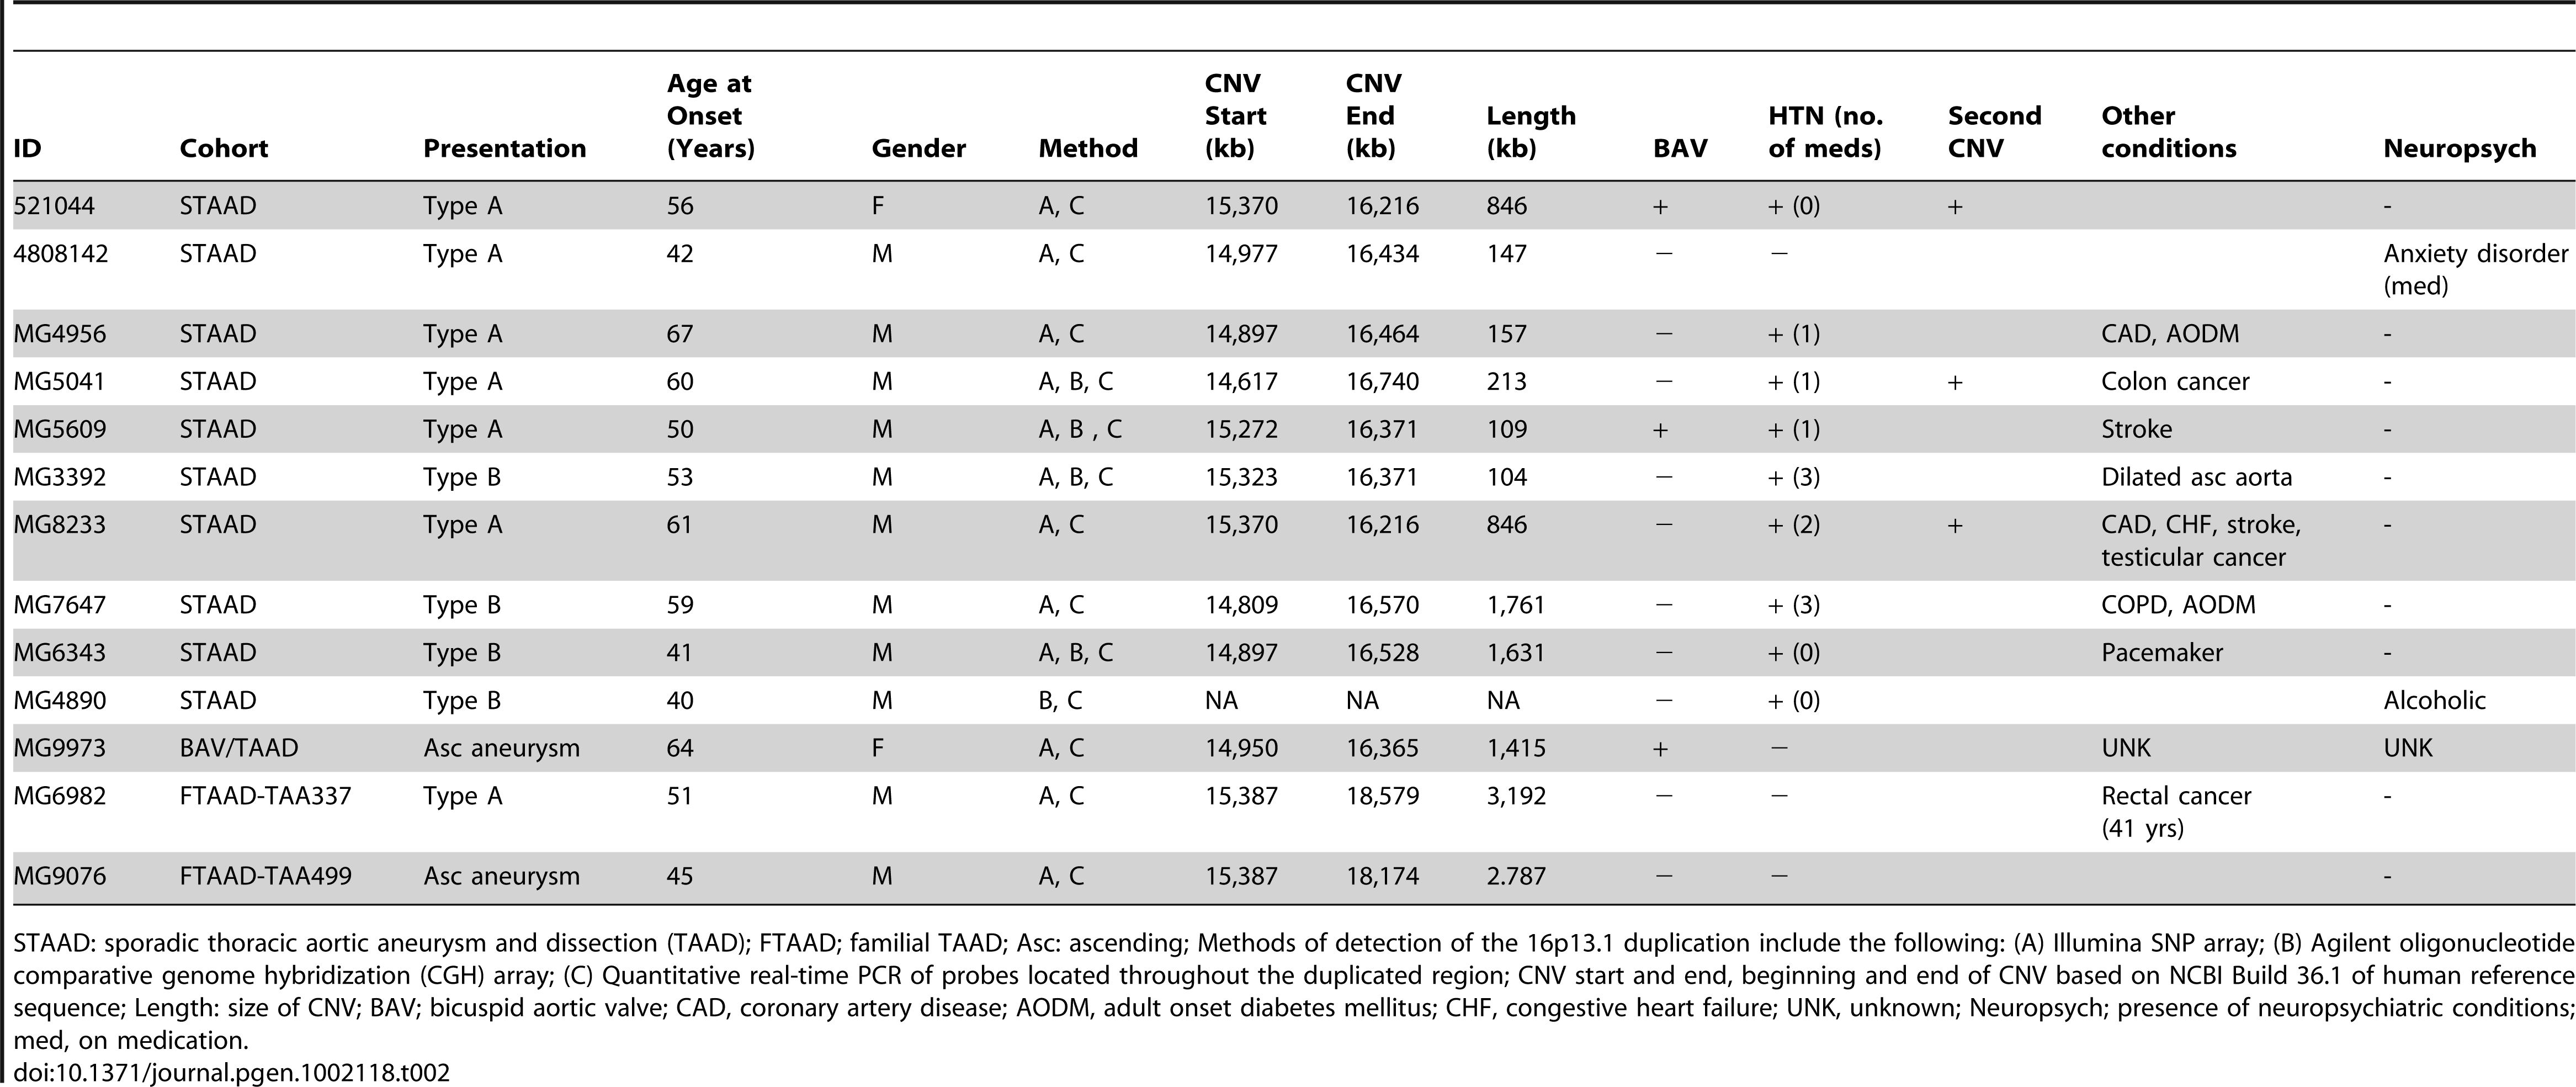 Clinical characteristics of patients with 16p13.1 duplications.